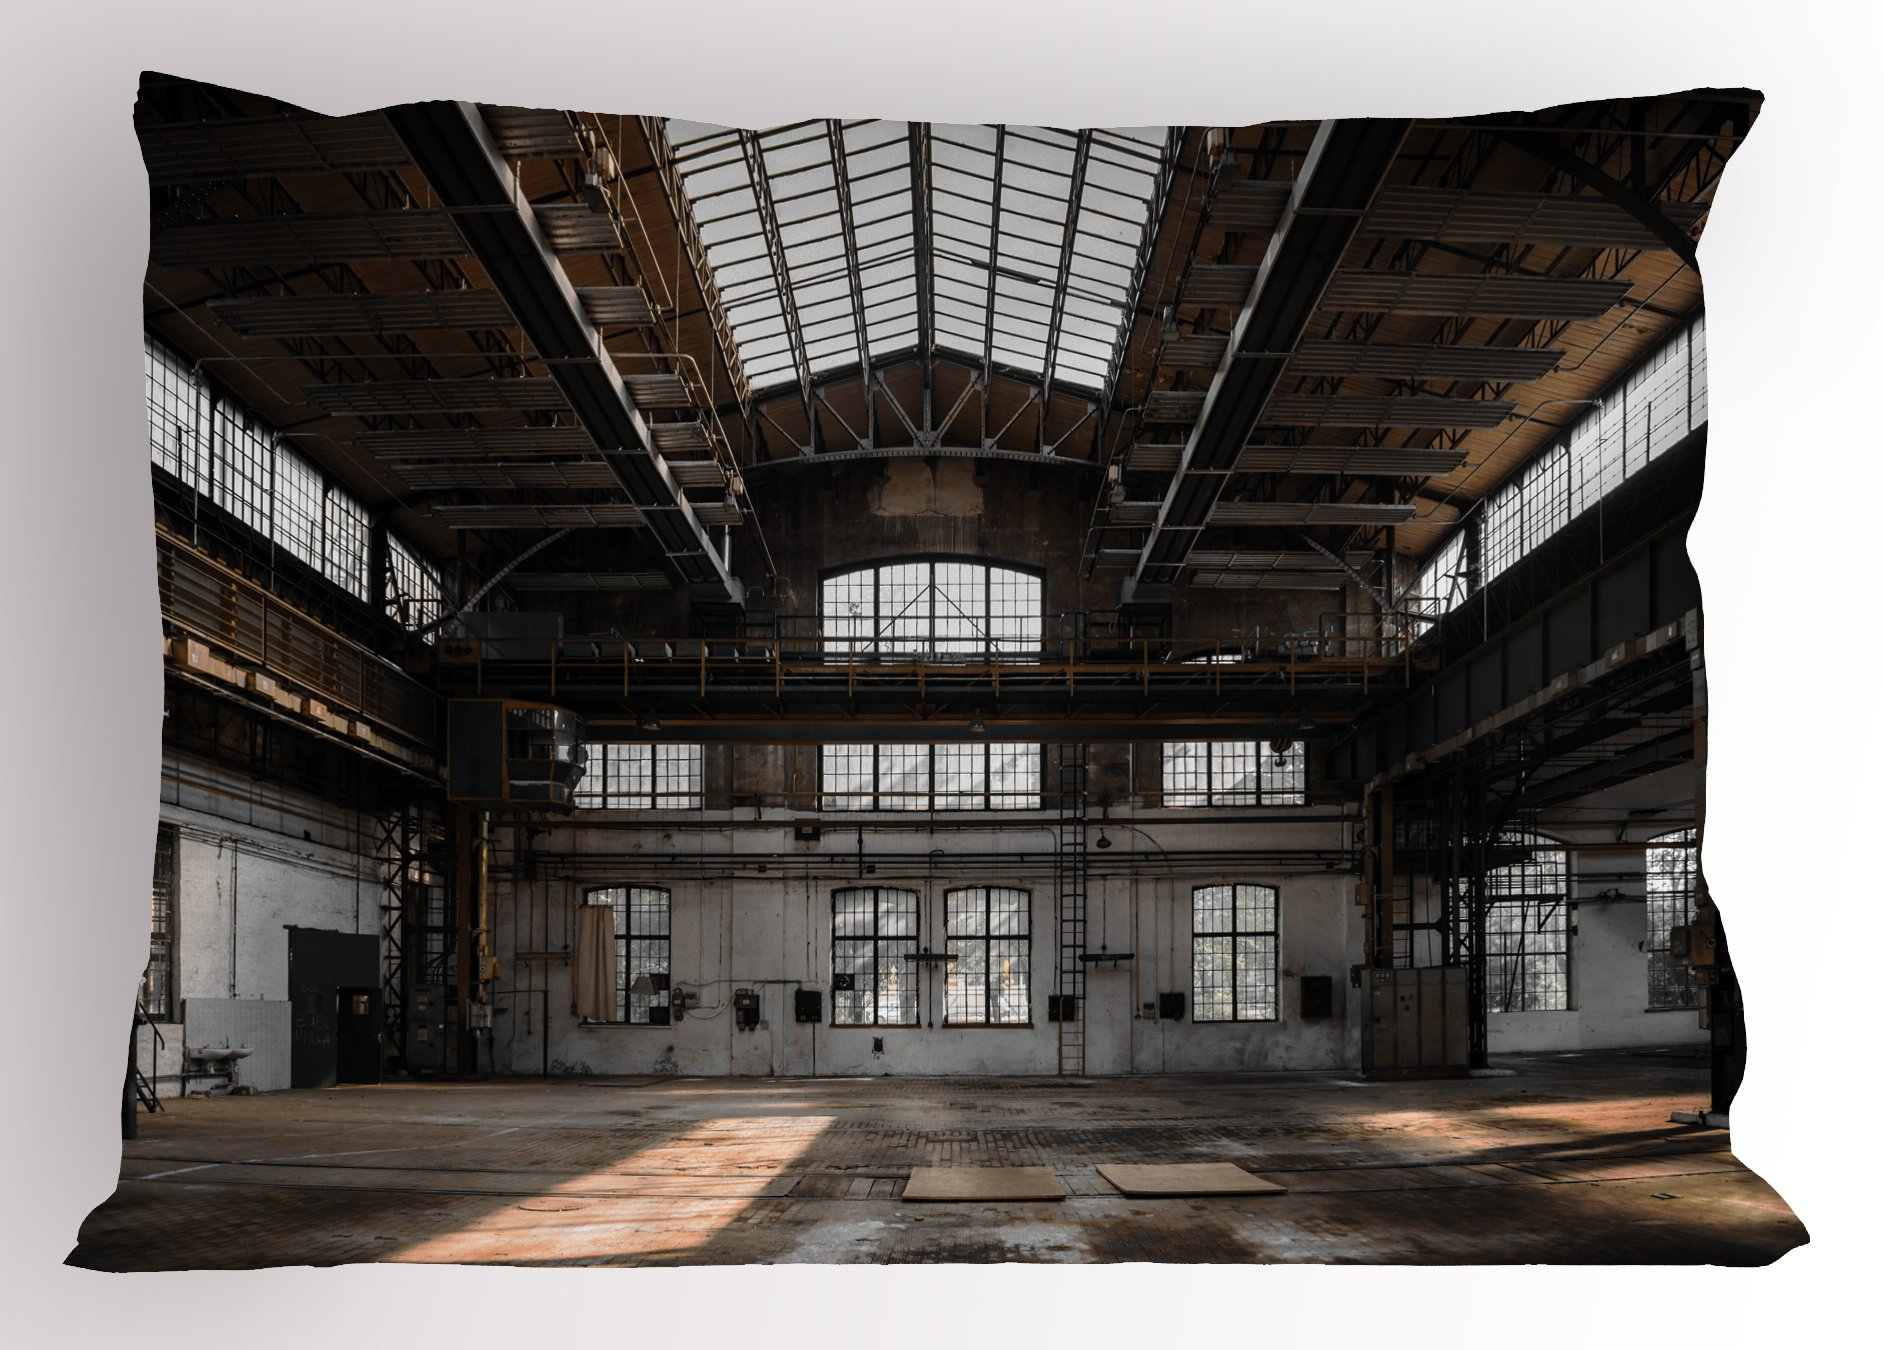 Ambesonne Industrial Decor Pillow Sham, Inside a Hangar Old Architecture Construction Urban Timeworn Windows, Decorative Standard Size Printed Pillowcase, 26 X 20 inches, Brown White Grey by Ambesonne (Image #1)